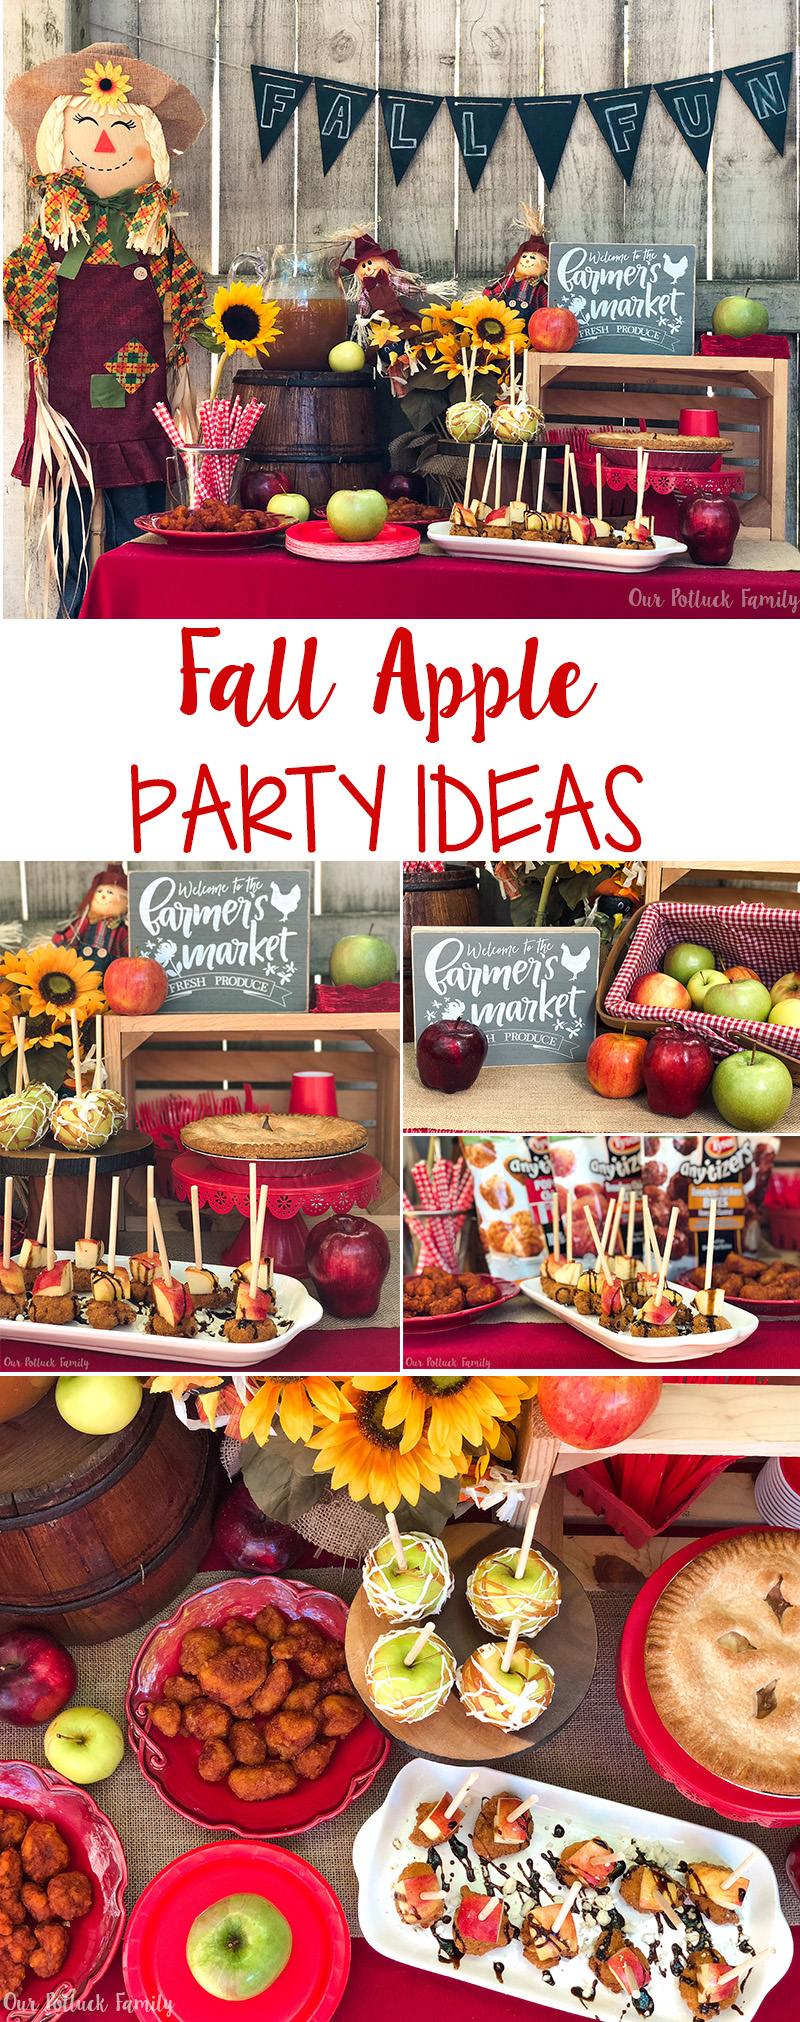 Fall Apple Party